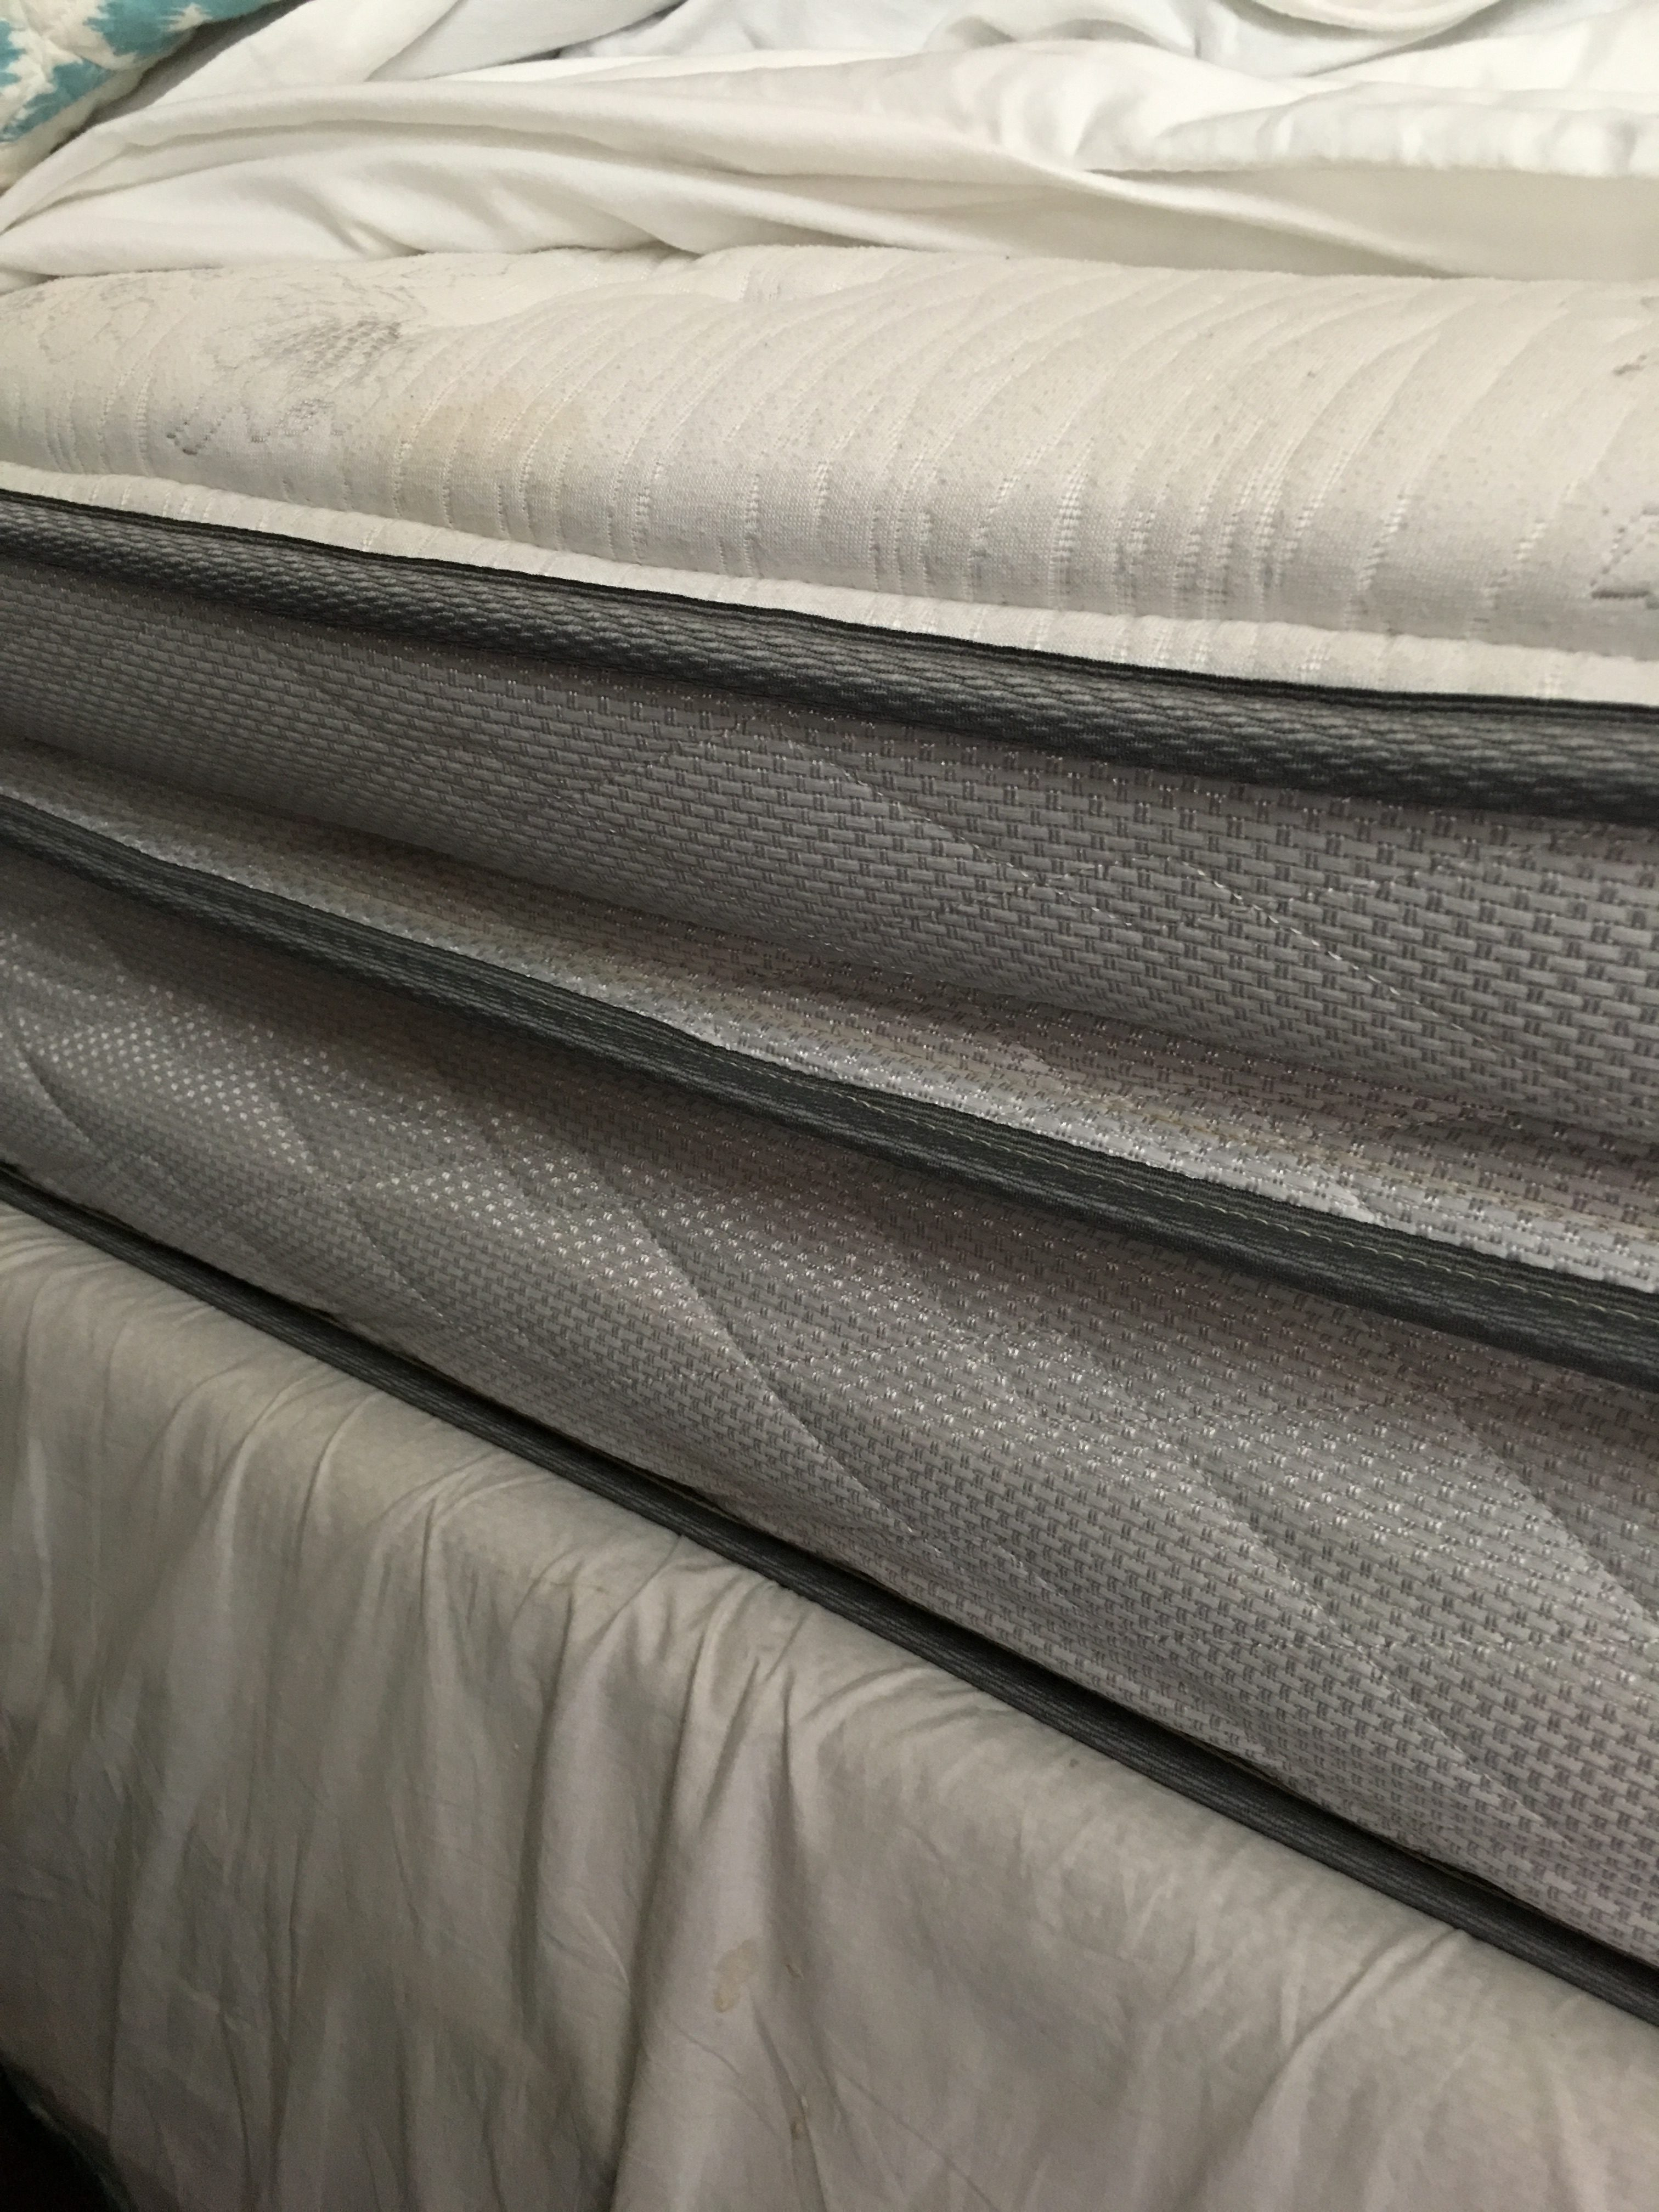 """We had a 5 star king size Serta mattress that has shifted 3"""" and the guy  that came out said he has NEVER seen anything like it!"""